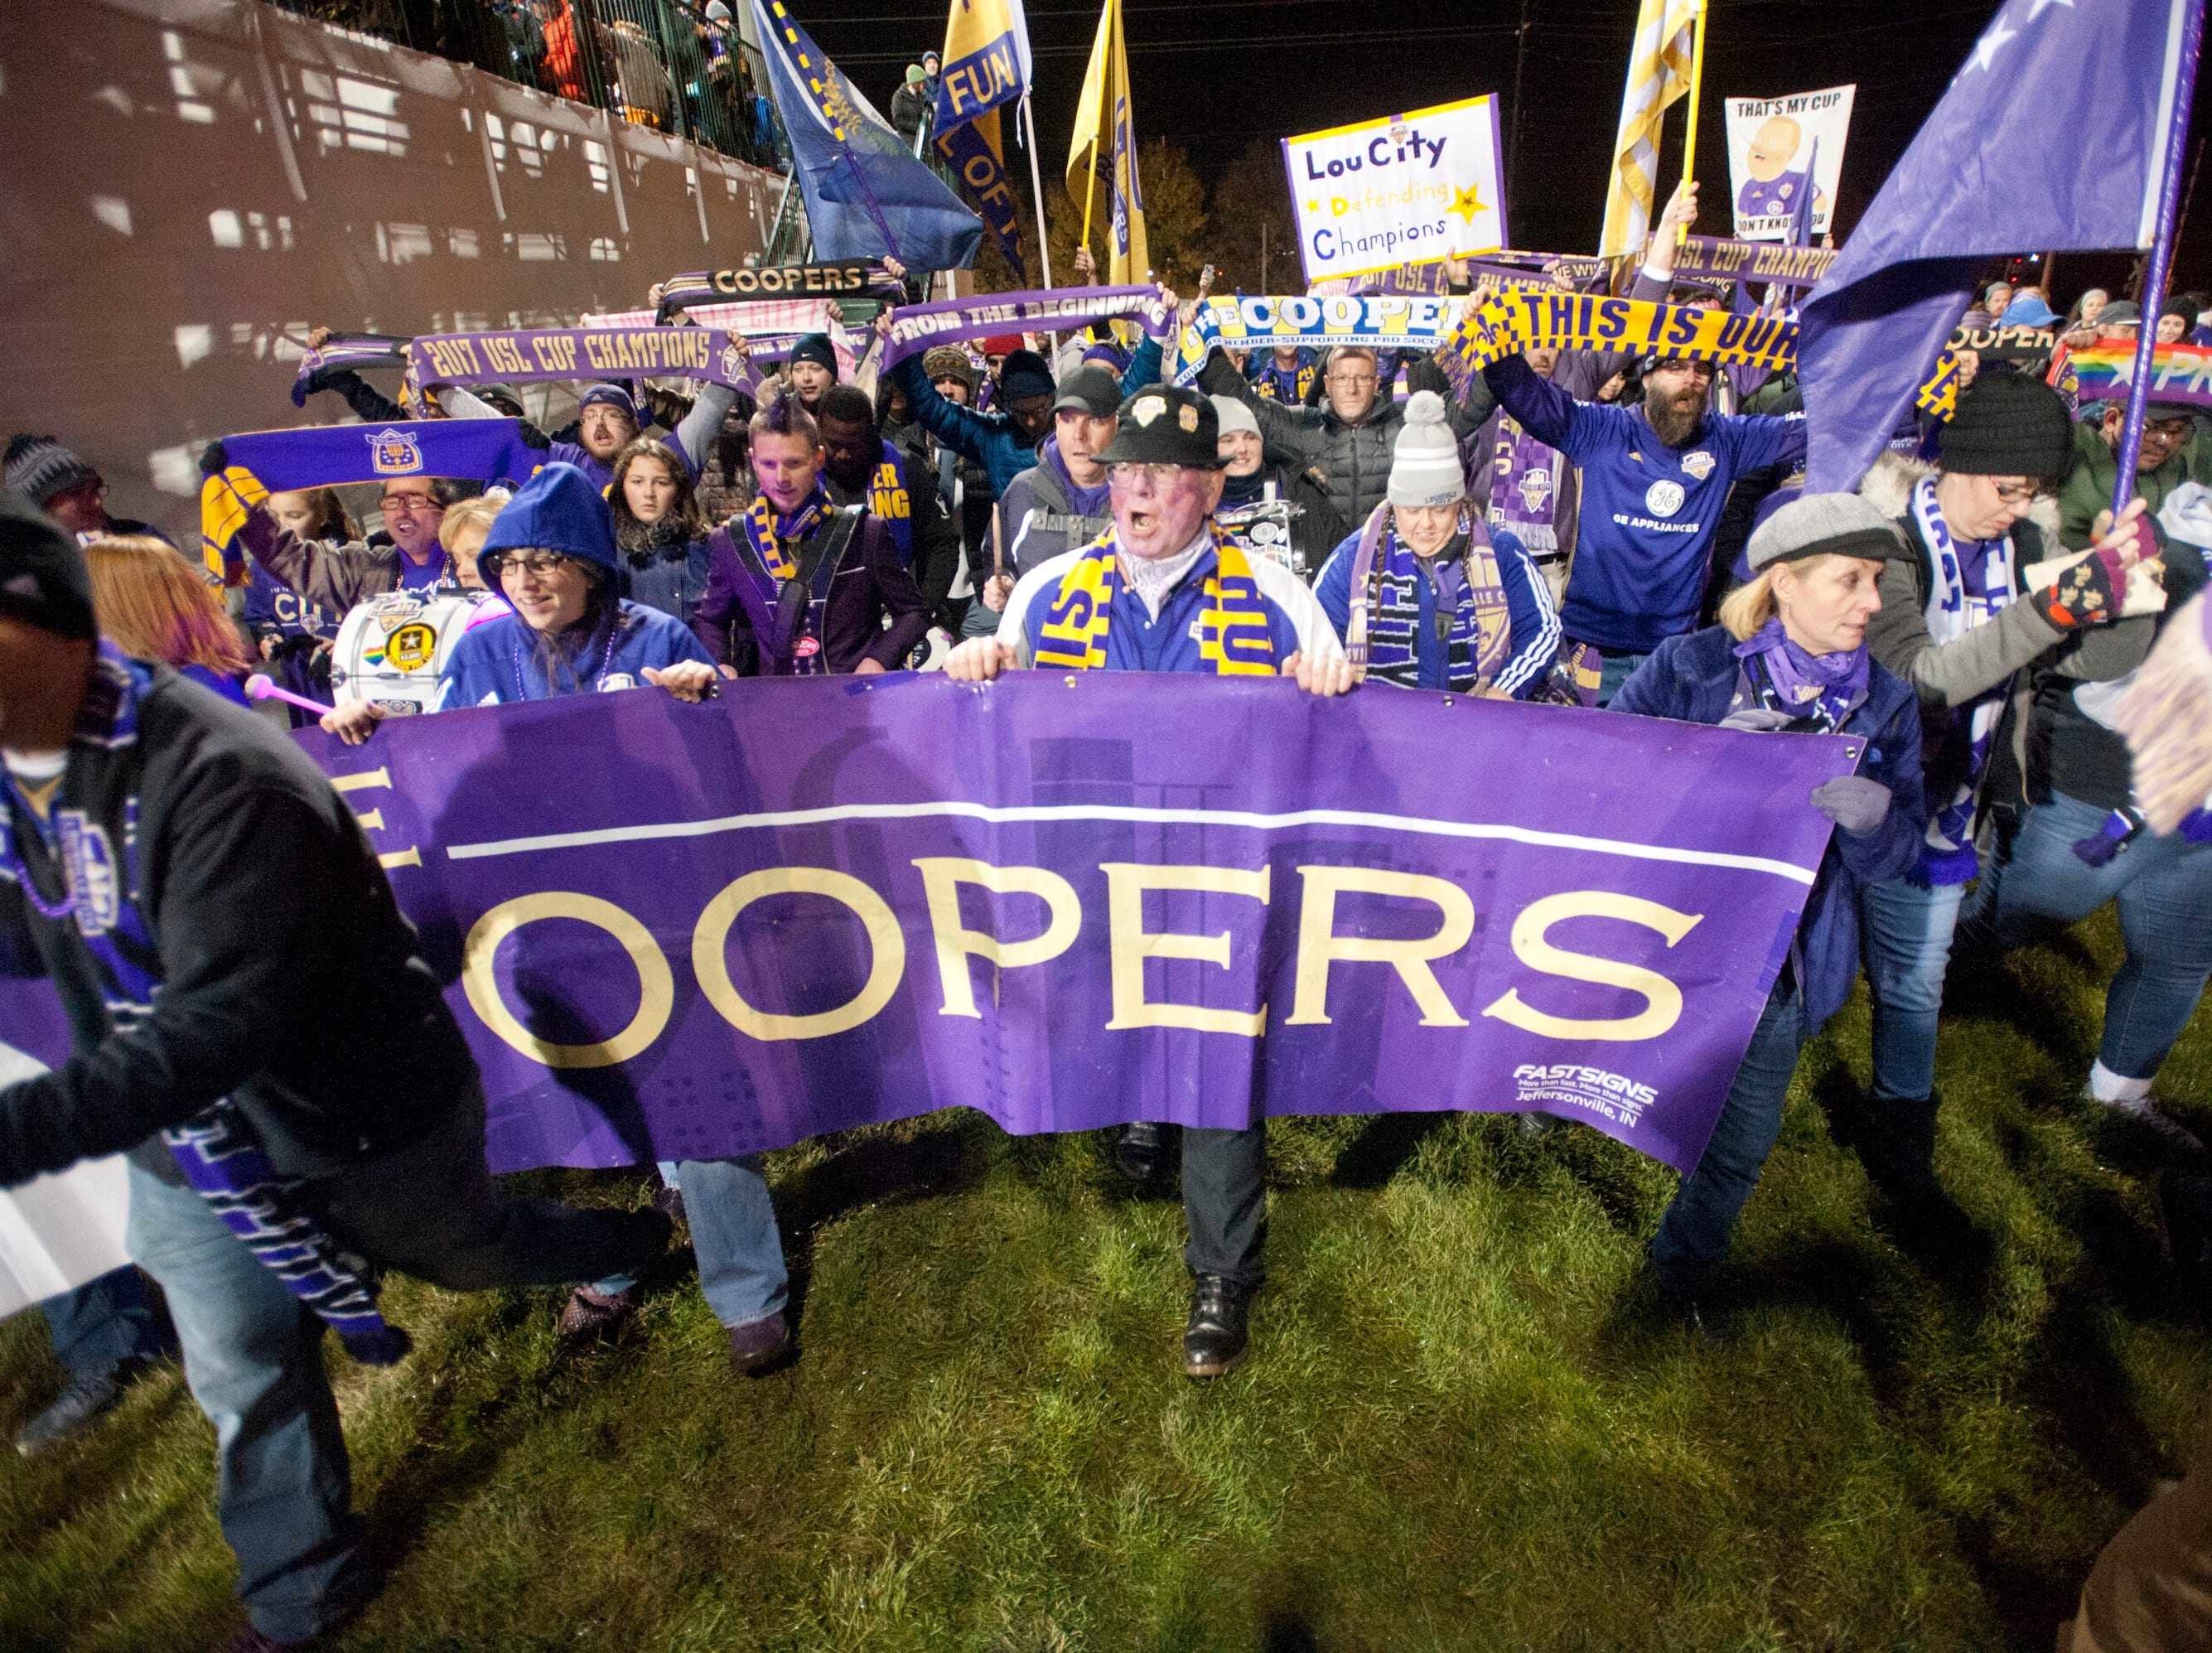 John Roca, center, joins other Louisville Coopers fans as they march into the stadium to support their team, Louisville City.November 08, 2018